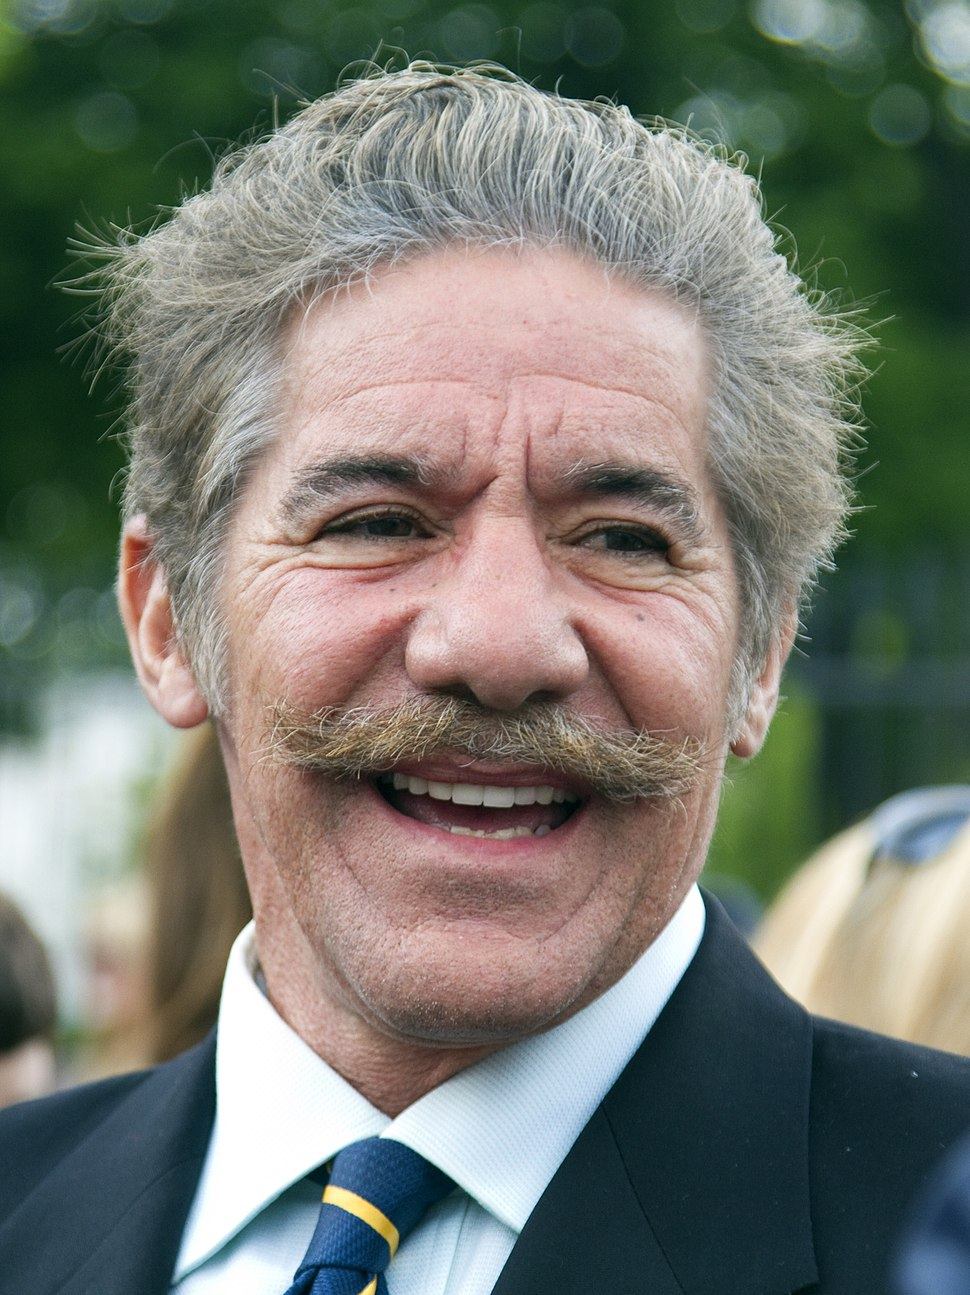 Geraldo Rivera at White House (5682334468) (cropped)